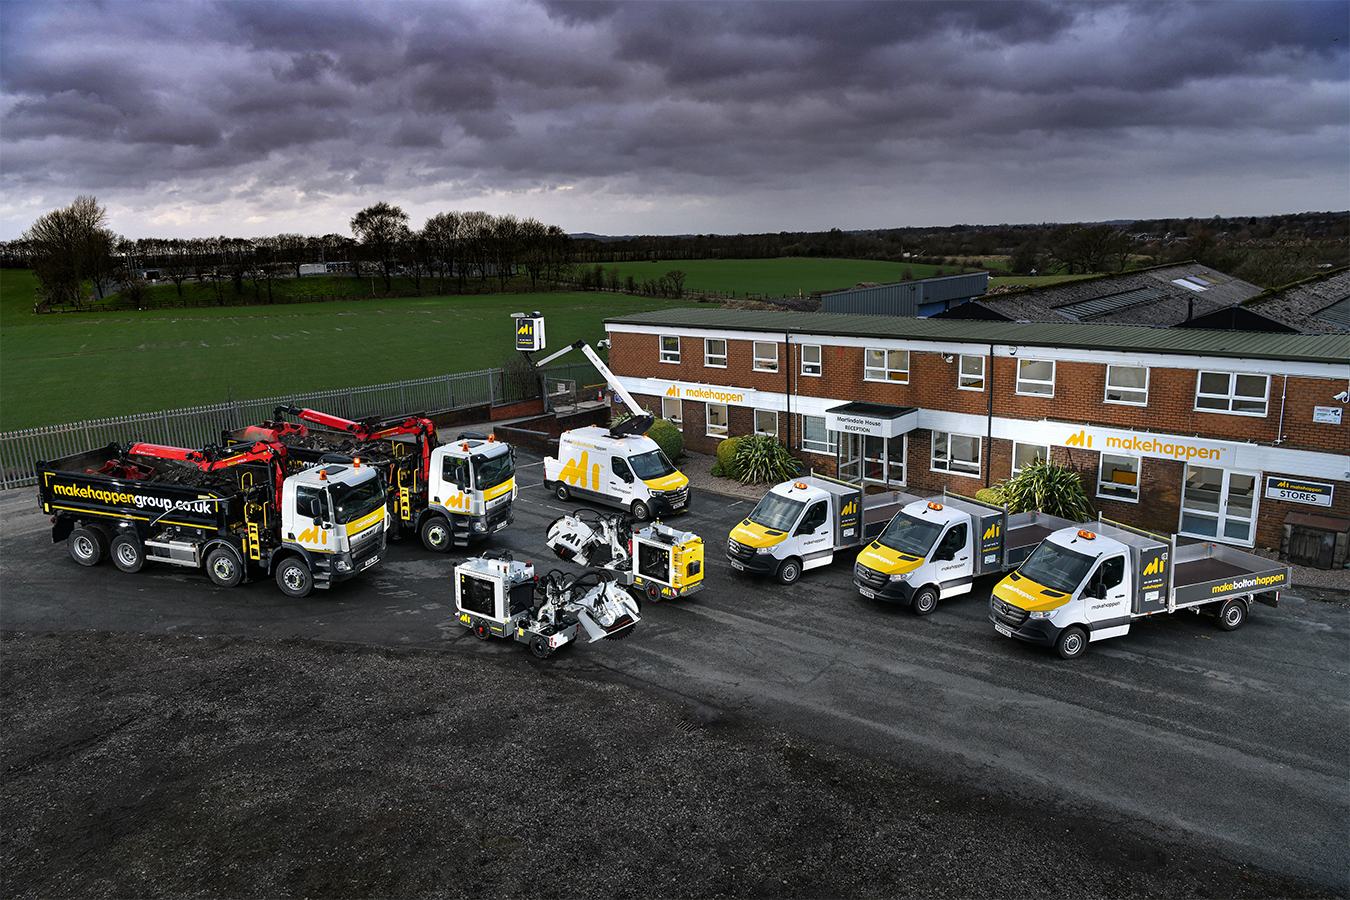 Makehappen partners with CityFibre and moves into new North West Depot to bring full fibre to homes and businesses in Bolton, creating up to 100 career opportunities